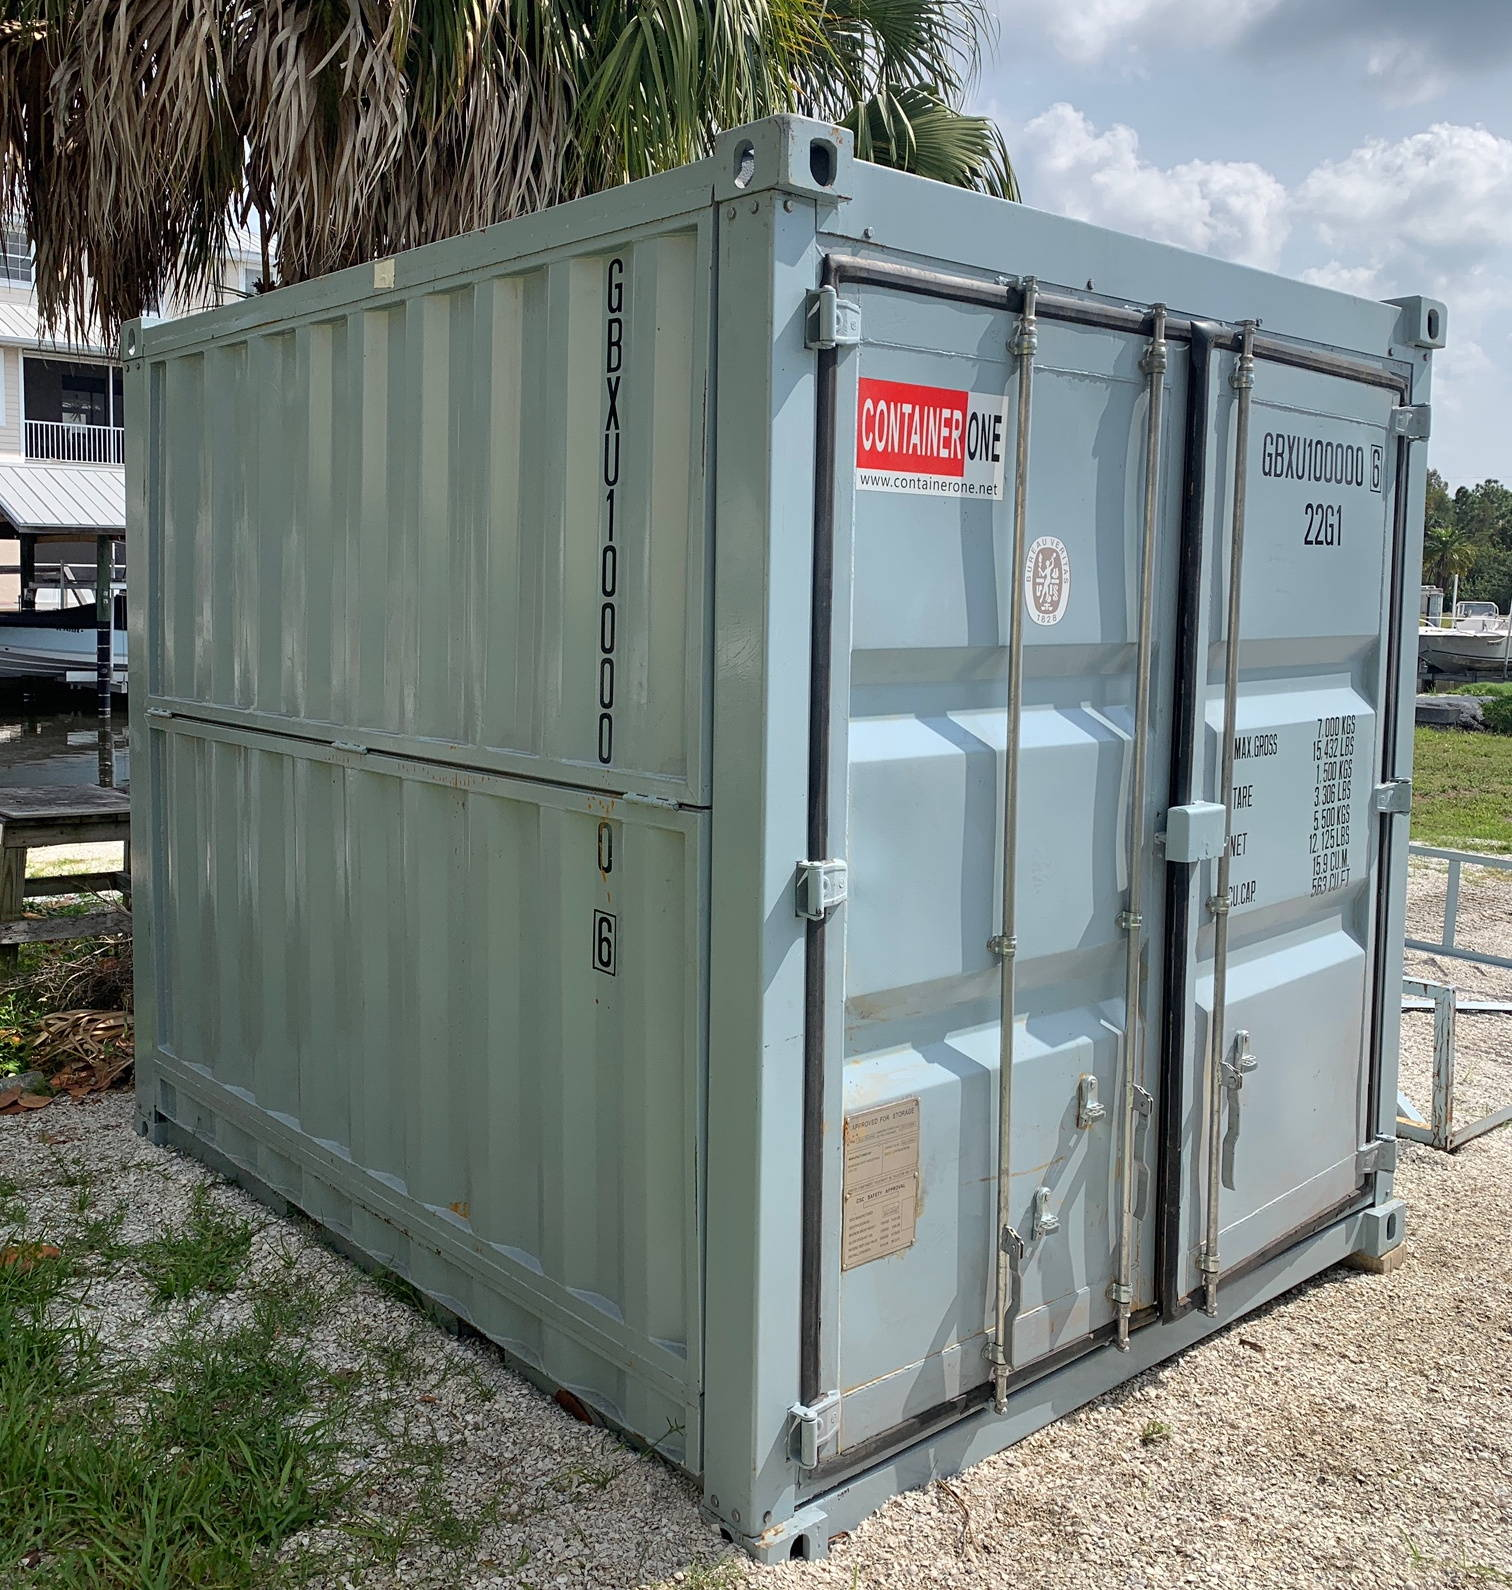 10 foot collapsible shipping container side view